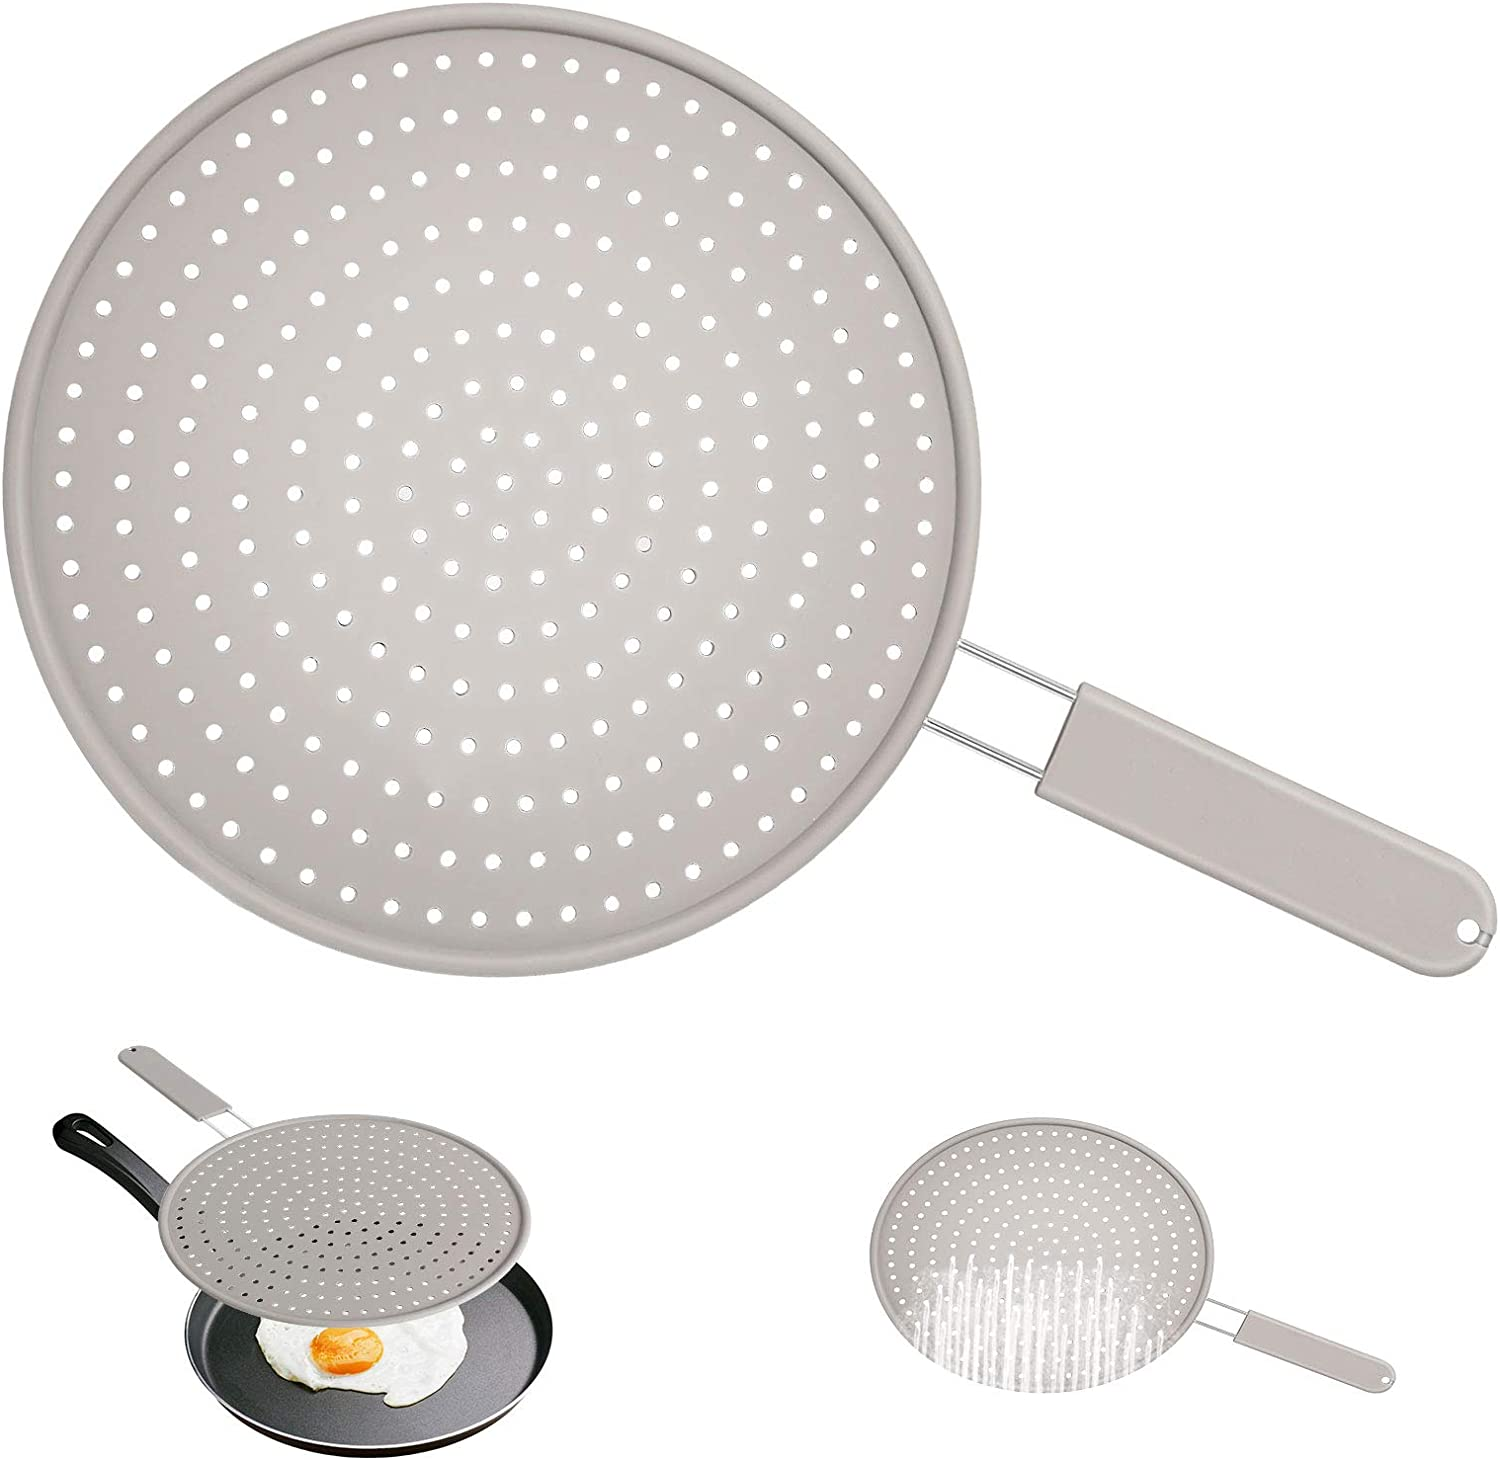 TMEDW Silicone Splatter Screen for Frying Pan,11 Inch Multi-Use 4 In 1 Grease Splatter Guard, Cooling Mat, Drain Board and Strainer, Non-Stick, Food Safe, High Heat Resistant Pan Cover